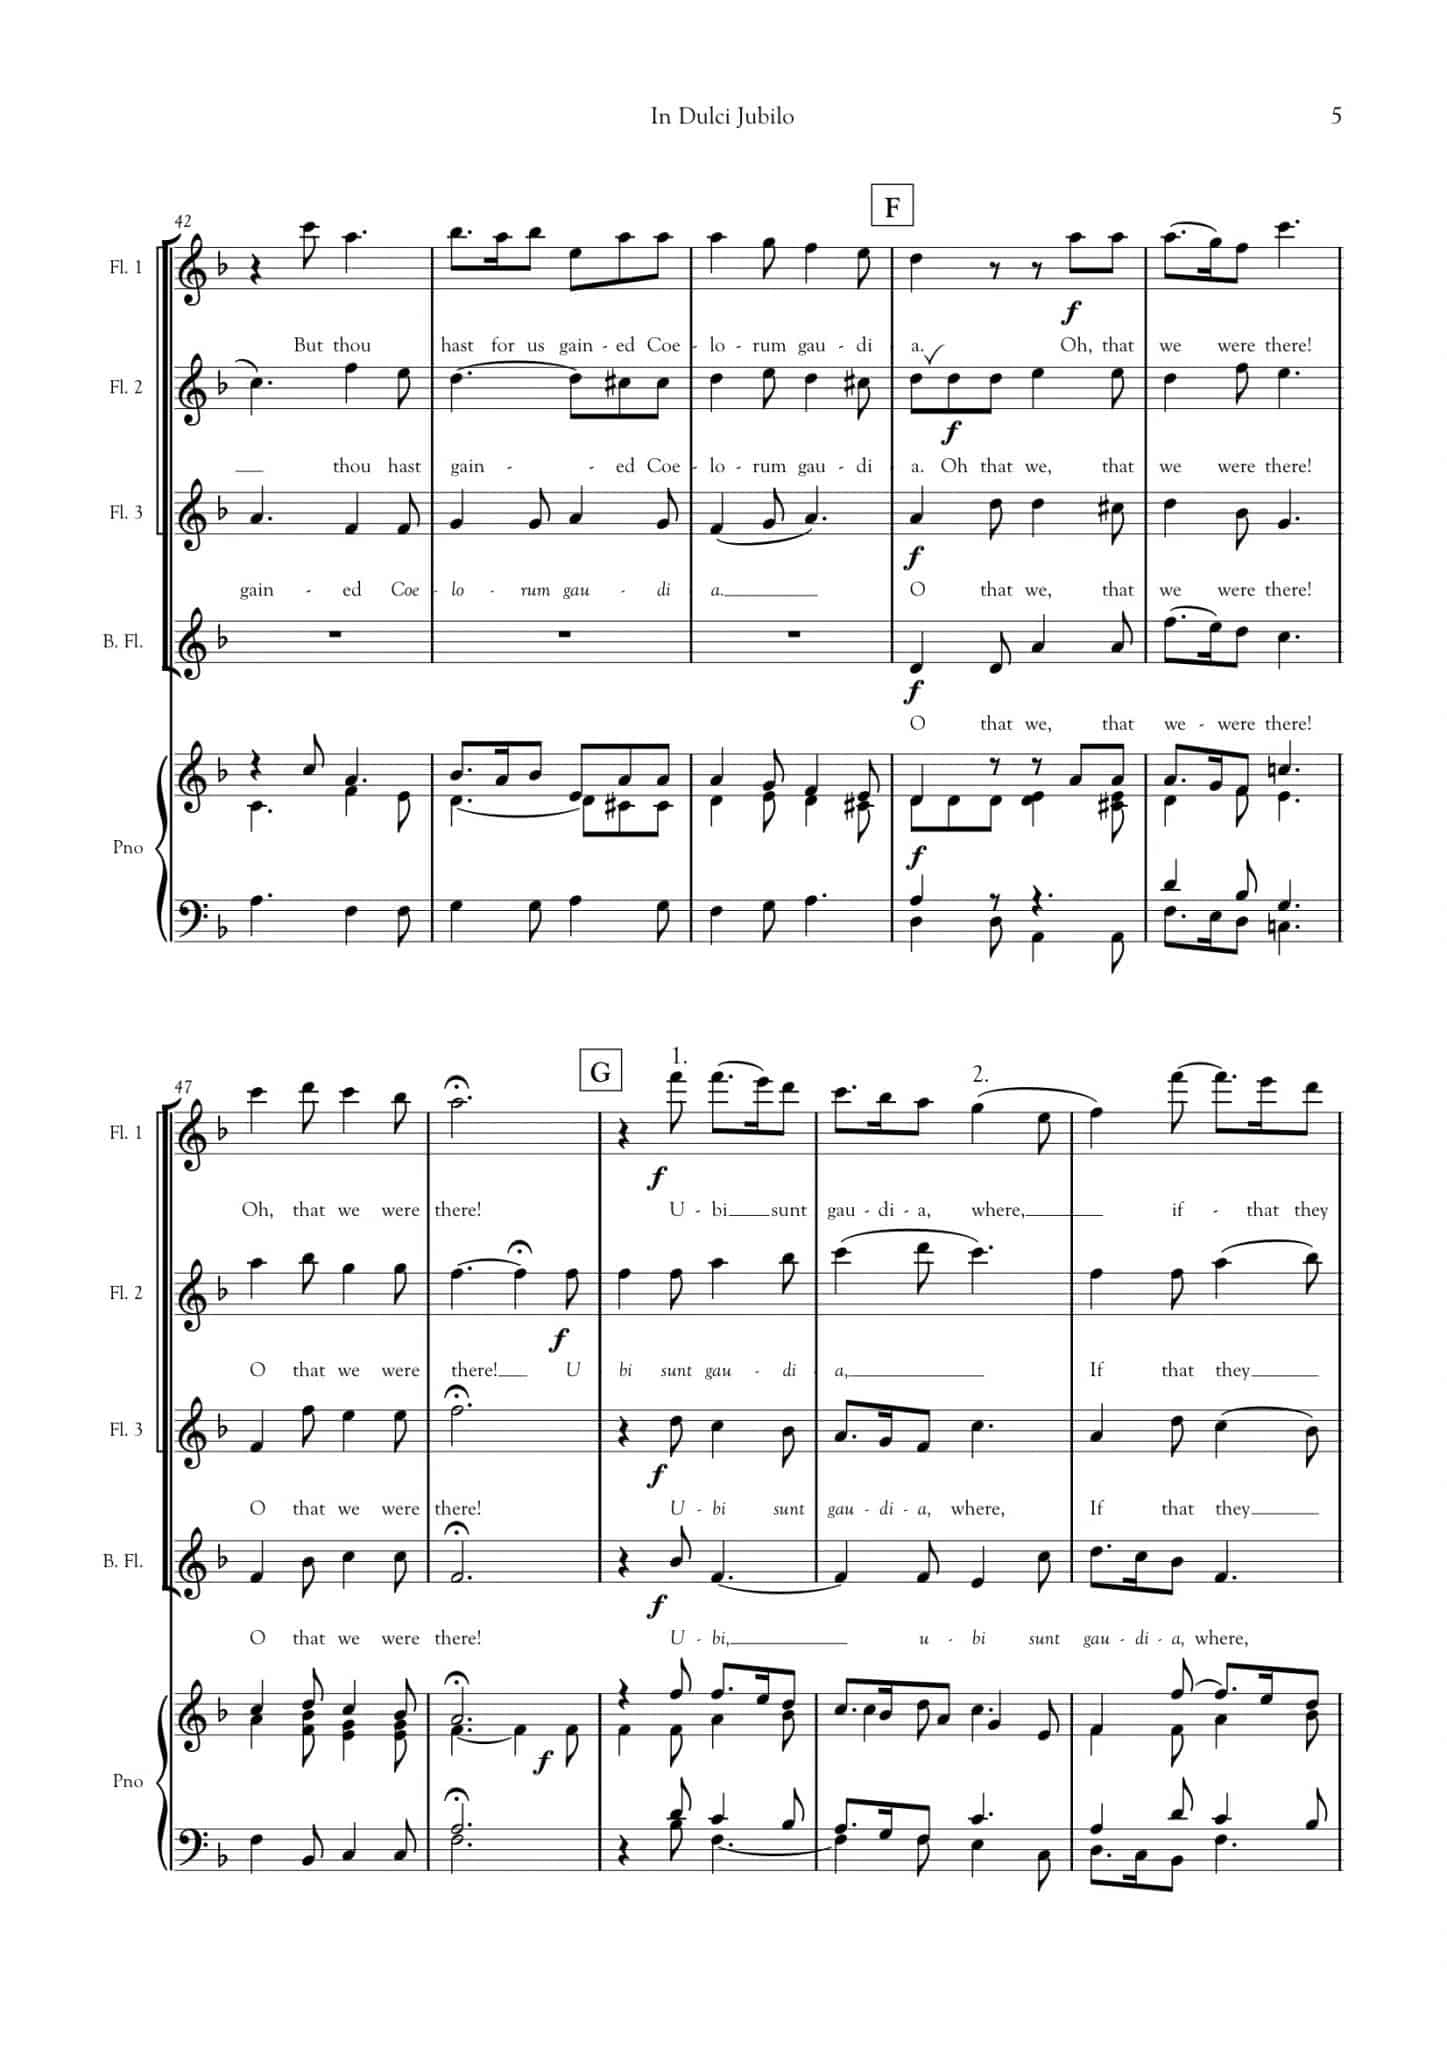 Simply Flute - In Dulci Jubilo - all parts_title sheet_no words copy_Part14